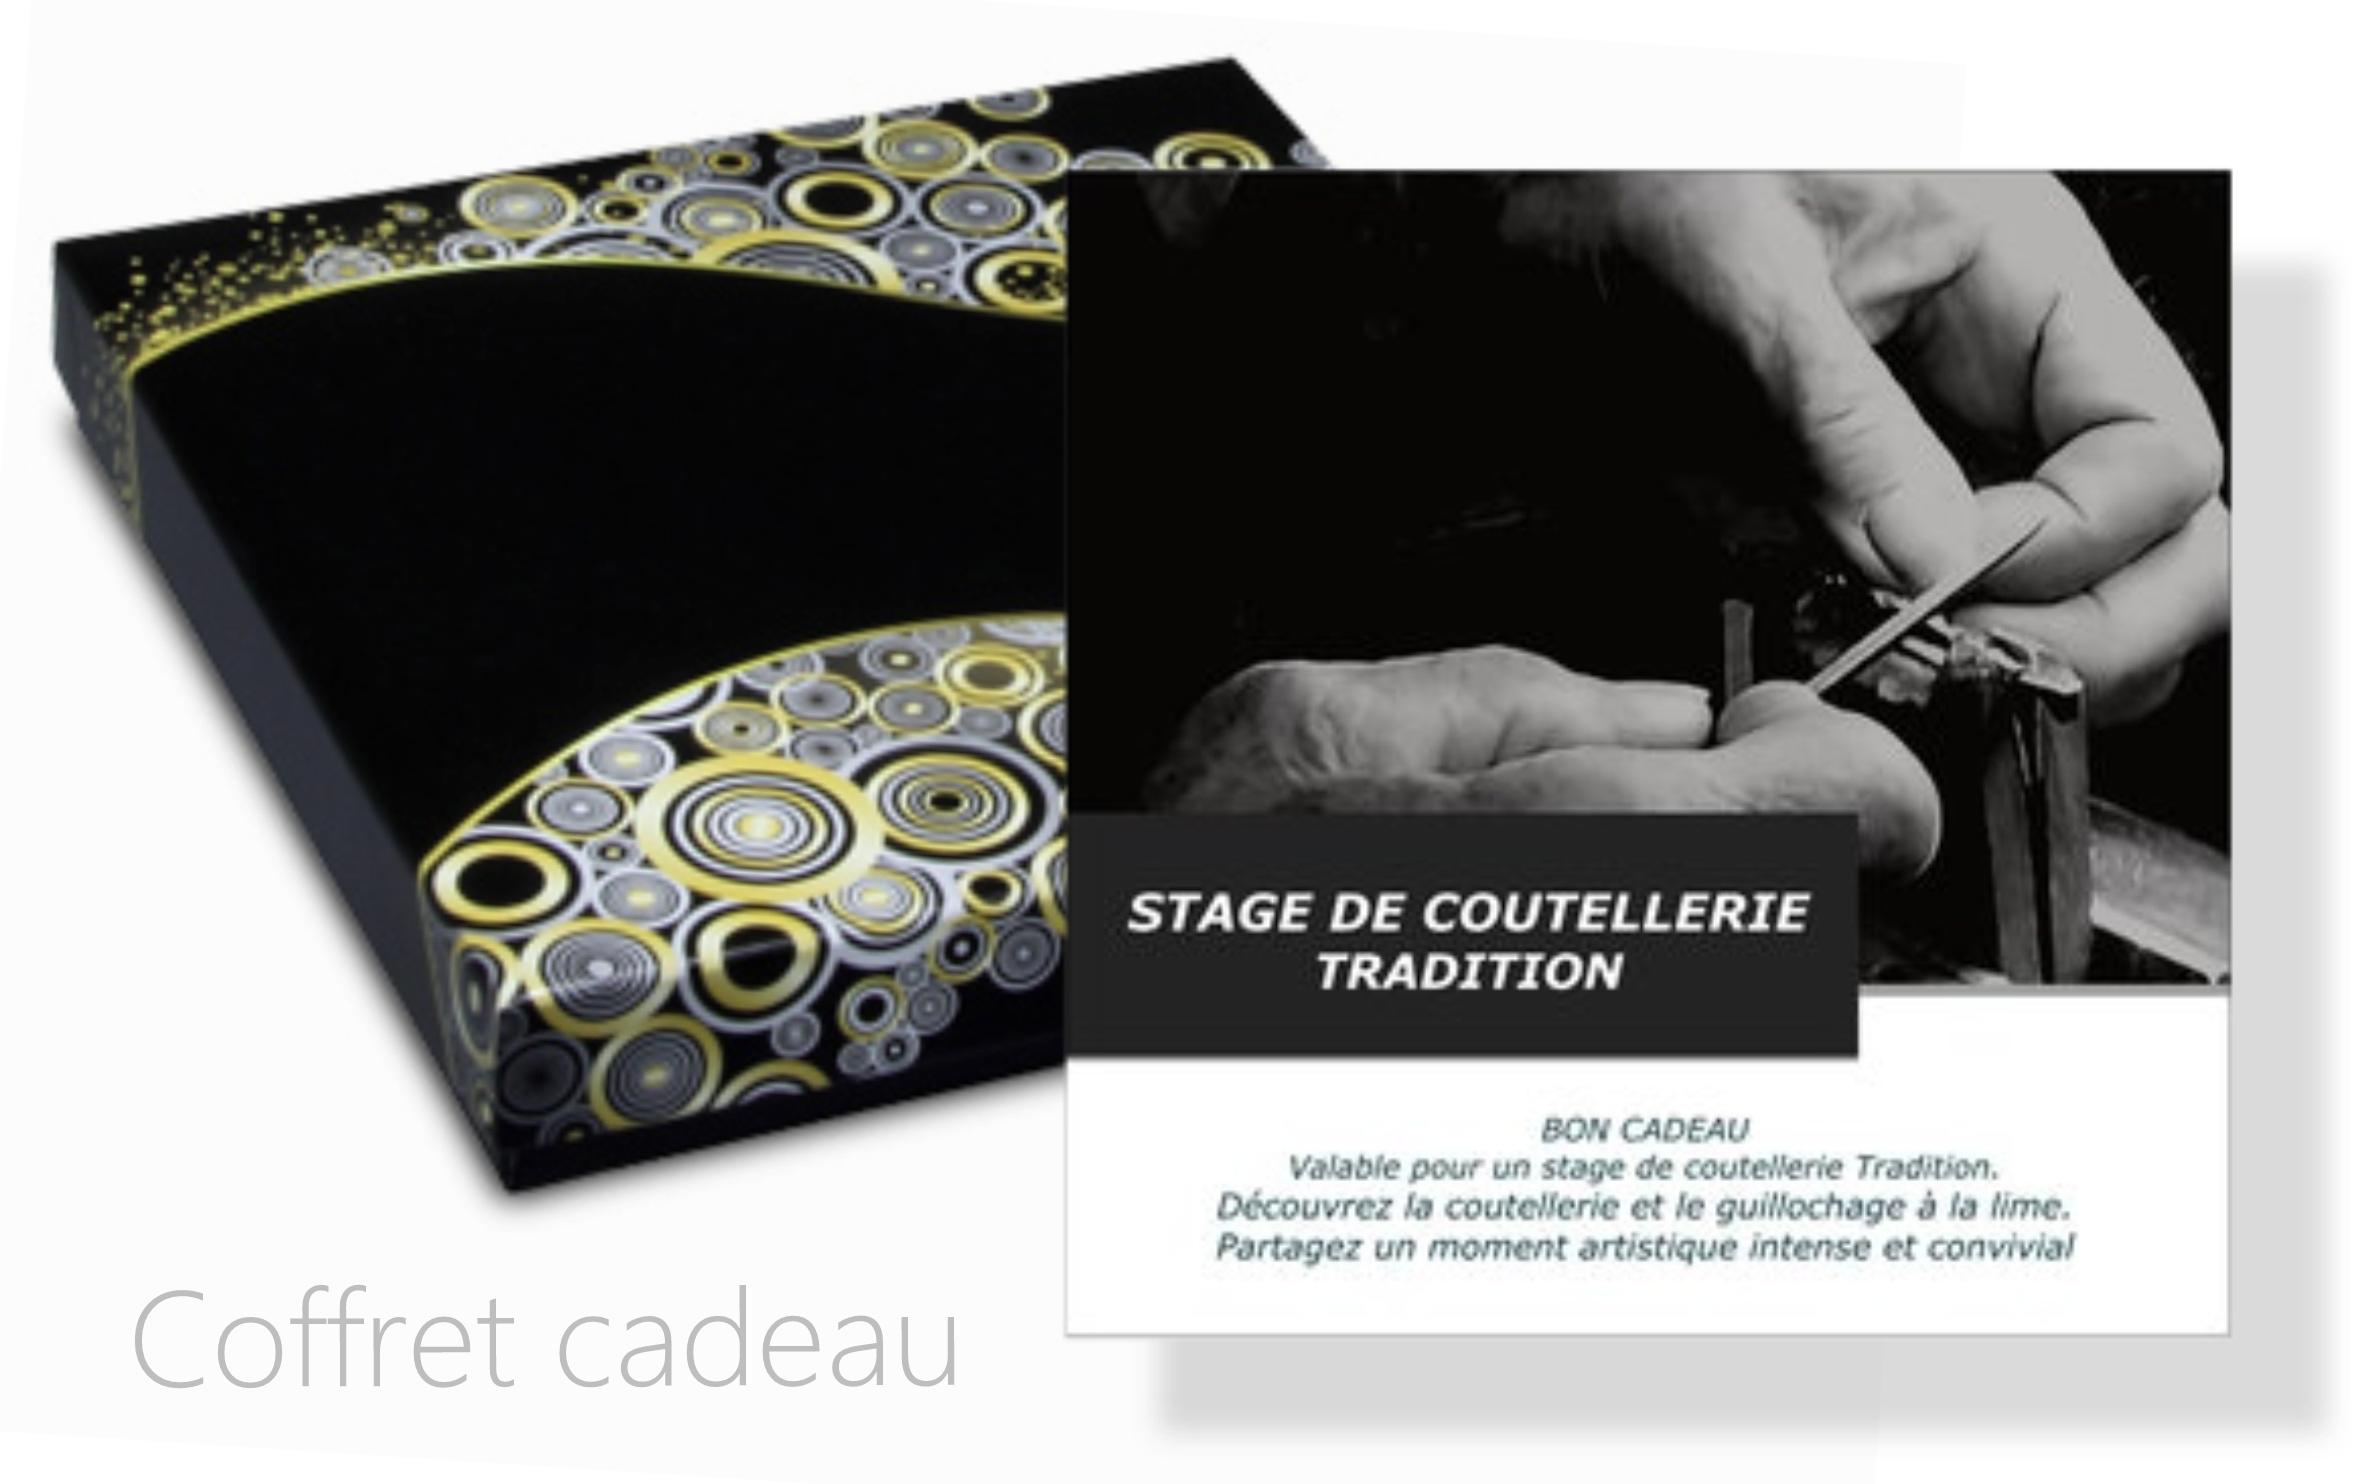 Coffret cadeau stage coutellerie tradition Lacaze christophe